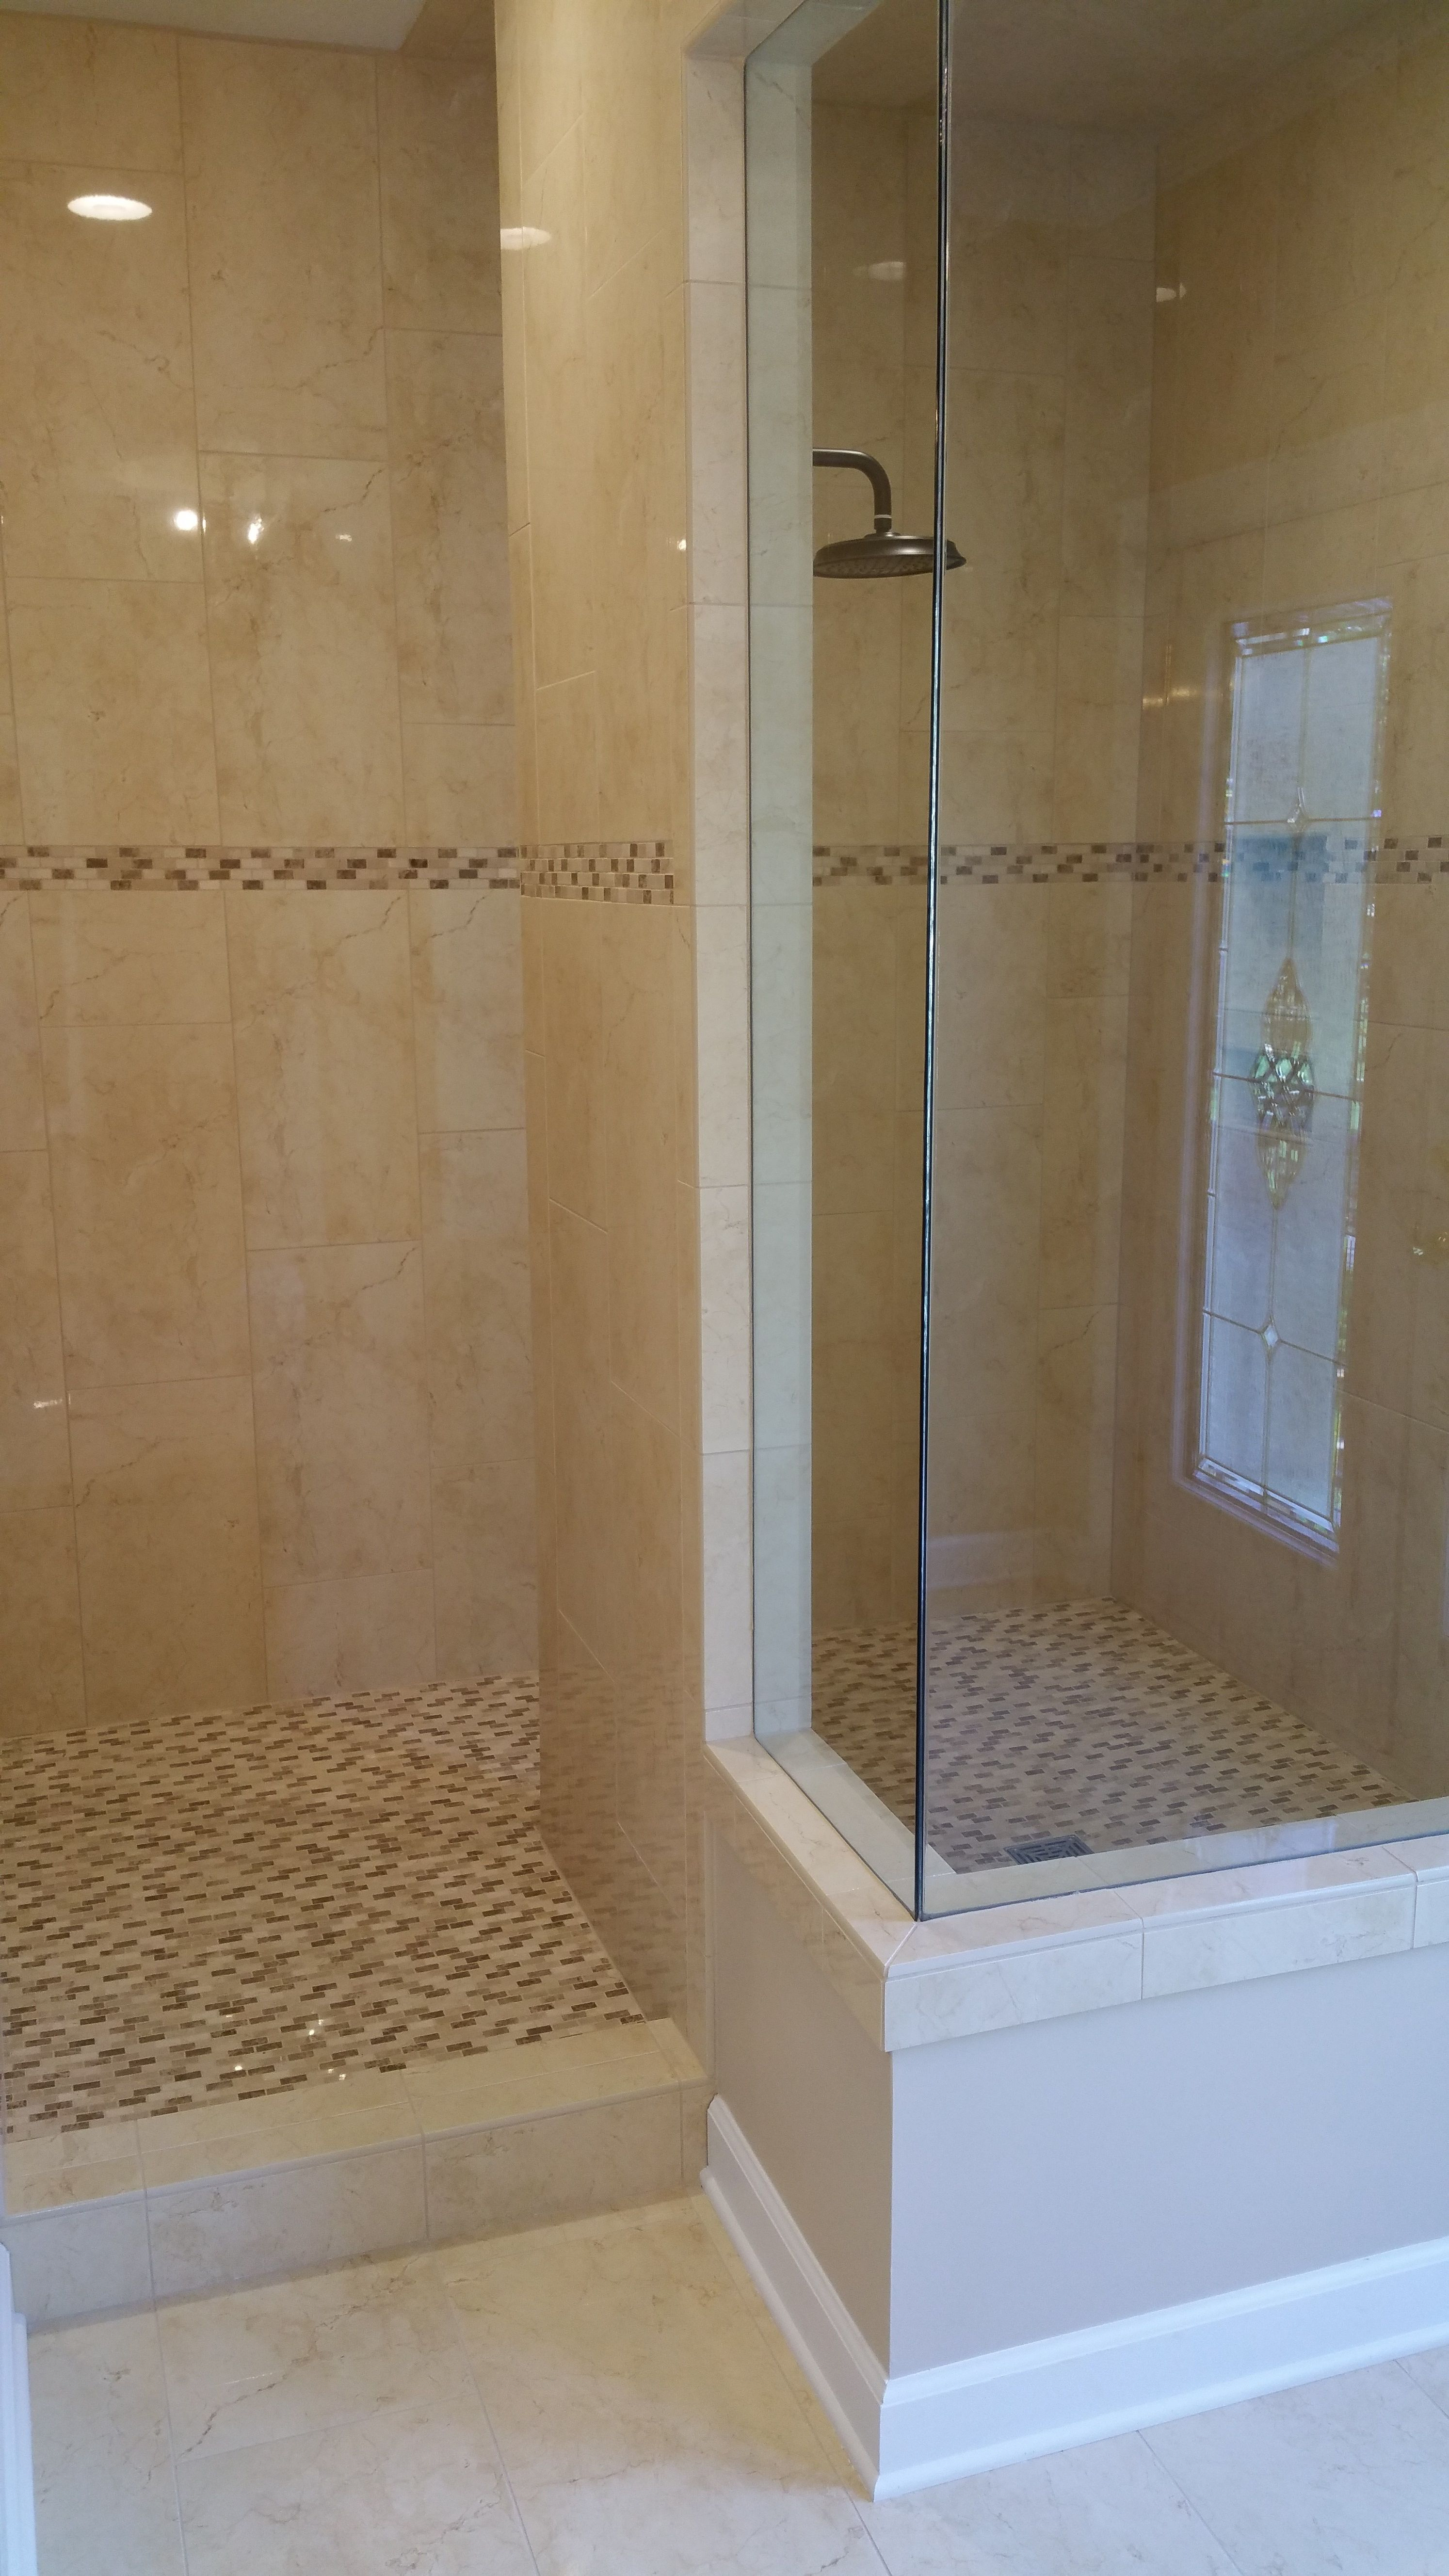 Master Bathroom Walk In Shower 12x24 Porcelain Tile On The Wallosaic Floor